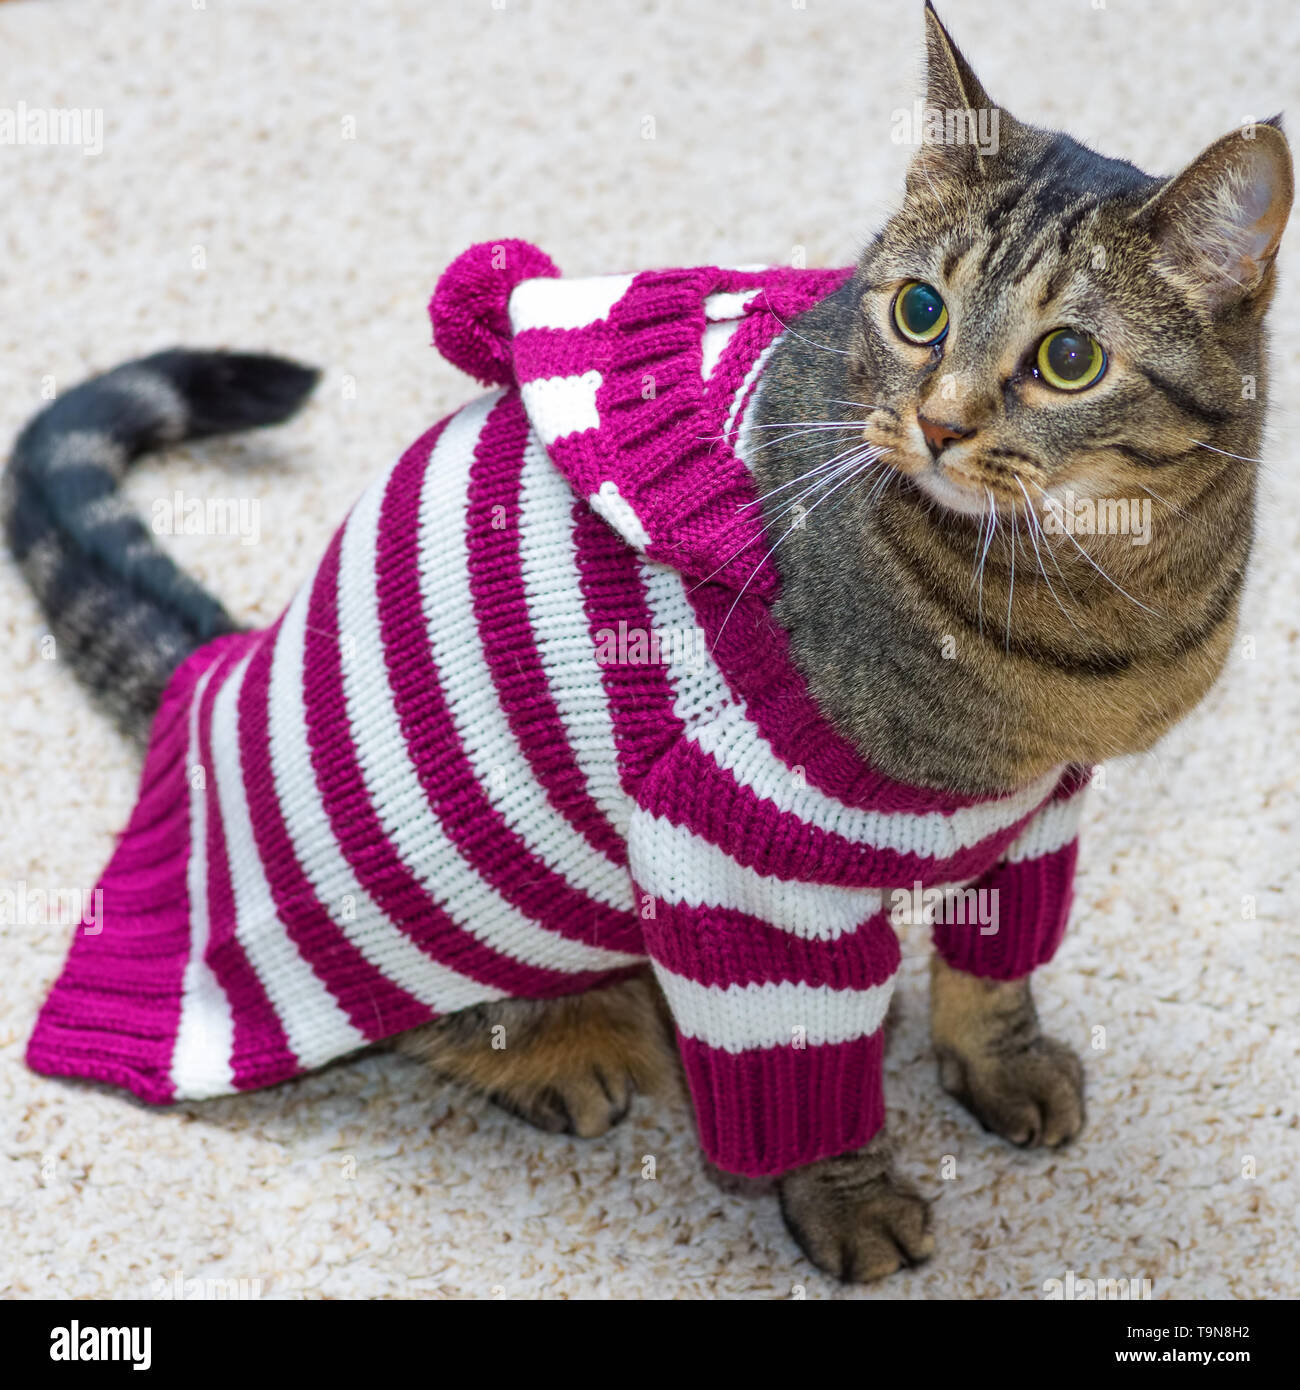 Kitten Christmas Sweater.Kitten Wearing Sweater Stock Photos Kitten Wearing Sweater